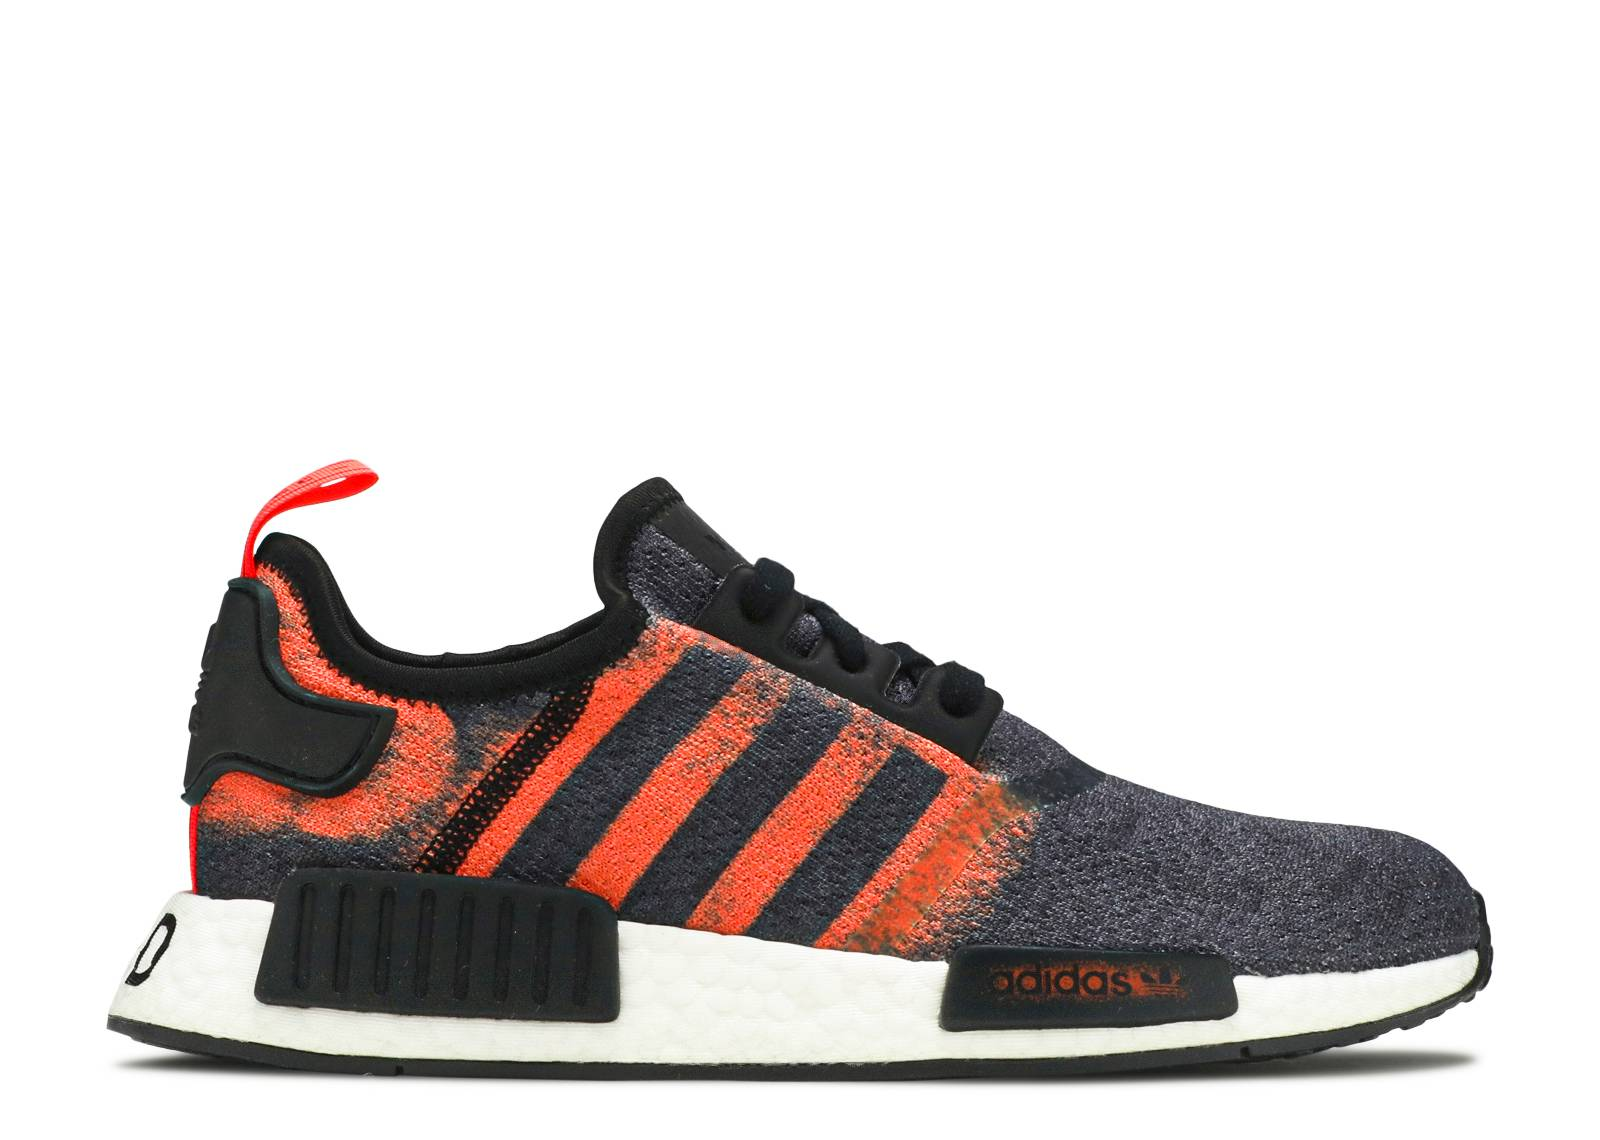 e60025d17a92c Adidas NMD - adidas Originals Men s   Women s Shoes